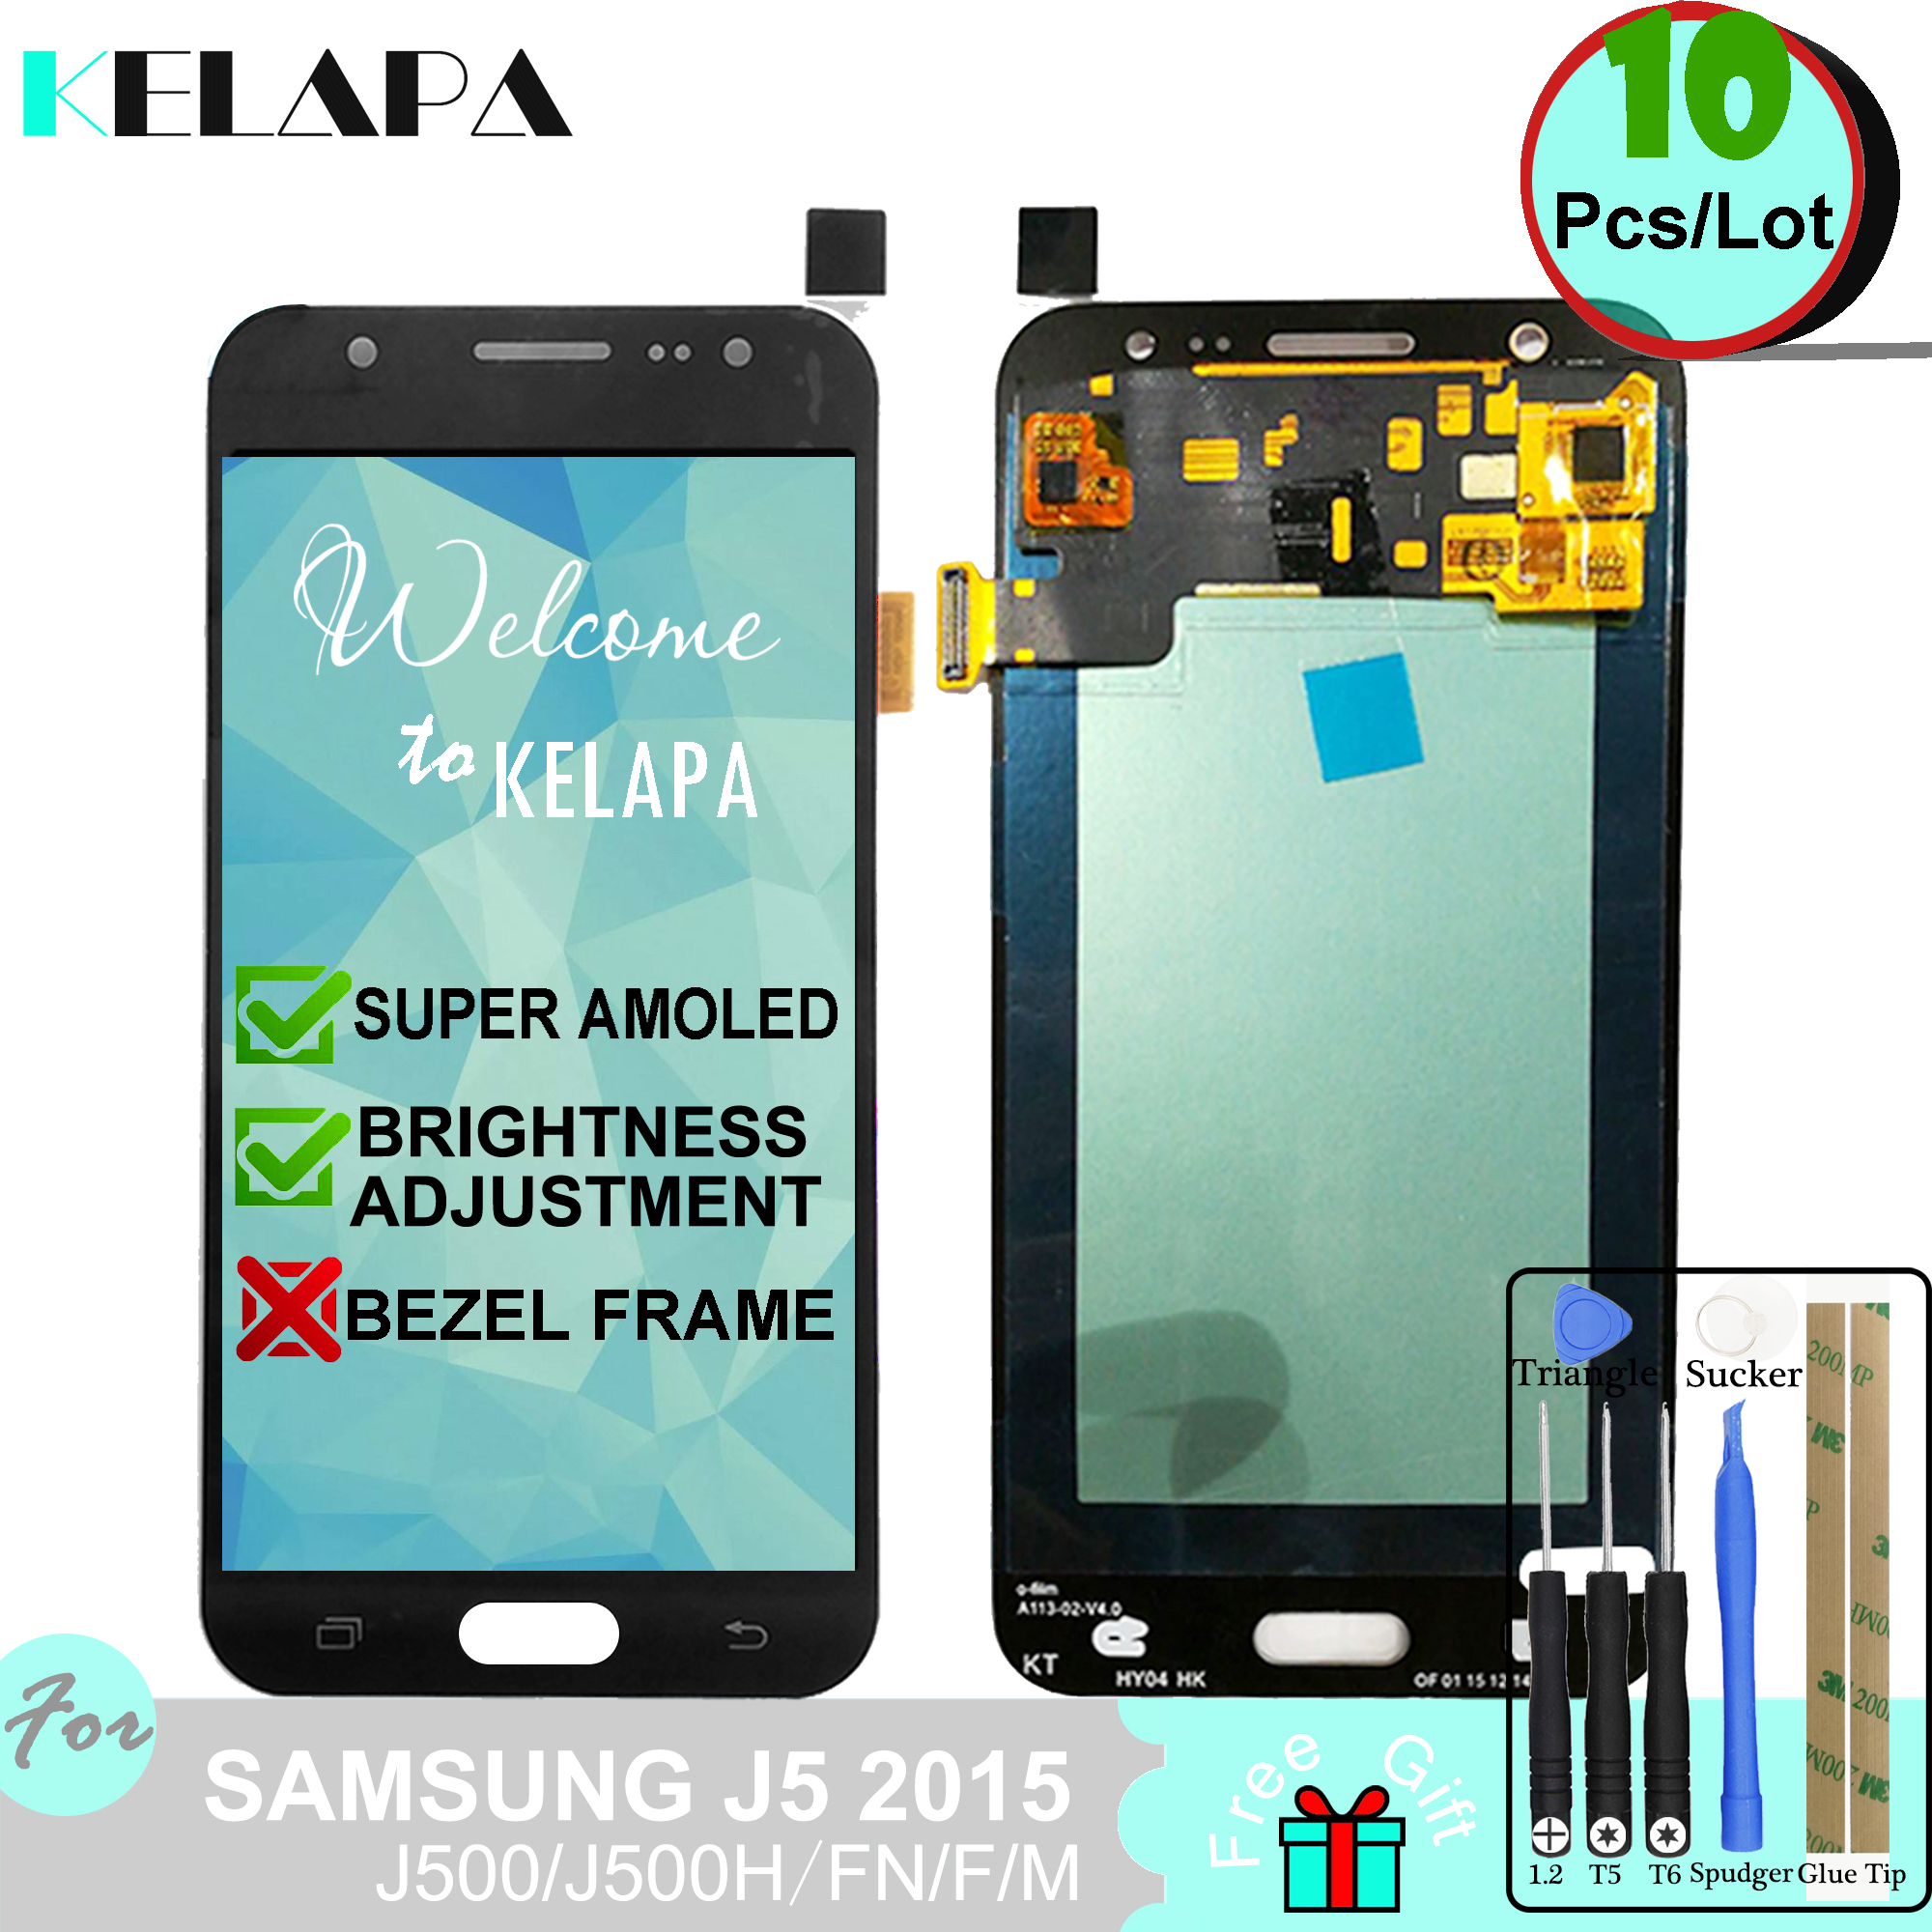 10 x Super AMOLED LCD For Samsung Galaxy J5 2015 J500 J500H J500FN J500F J500M /DS Touch Screen Digitizer Assembly10 x Super AMOLED LCD For Samsung Galaxy J5 2015 J500 J500H J500FN J500F J500M /DS Touch Screen Digitizer Assembly